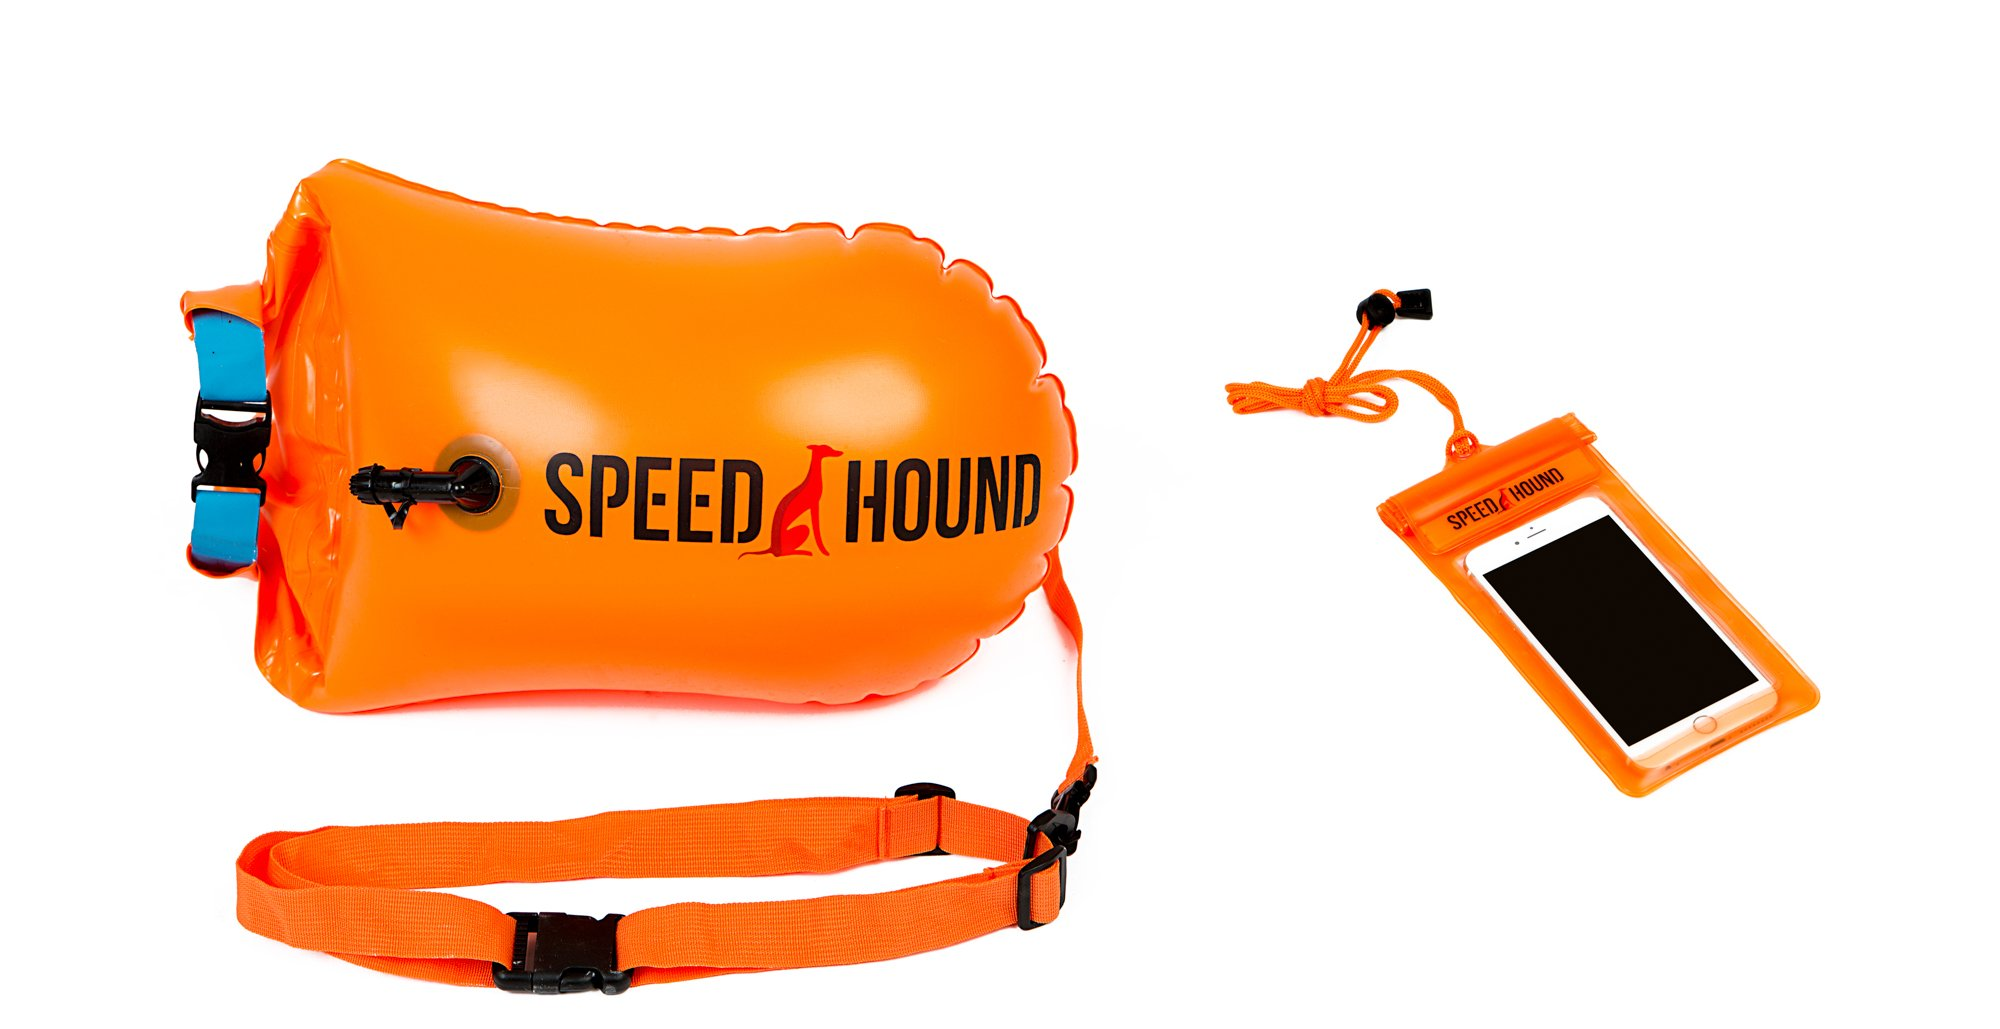 Speed Hound Sale Swim Buoy - Open Water Swim Buoy Flotation Device with Dry Bag and Waterproof Cell Phone Case (Orange) for Swimmers, Triathletes, and Snorkelers. Floats for Safer Swims